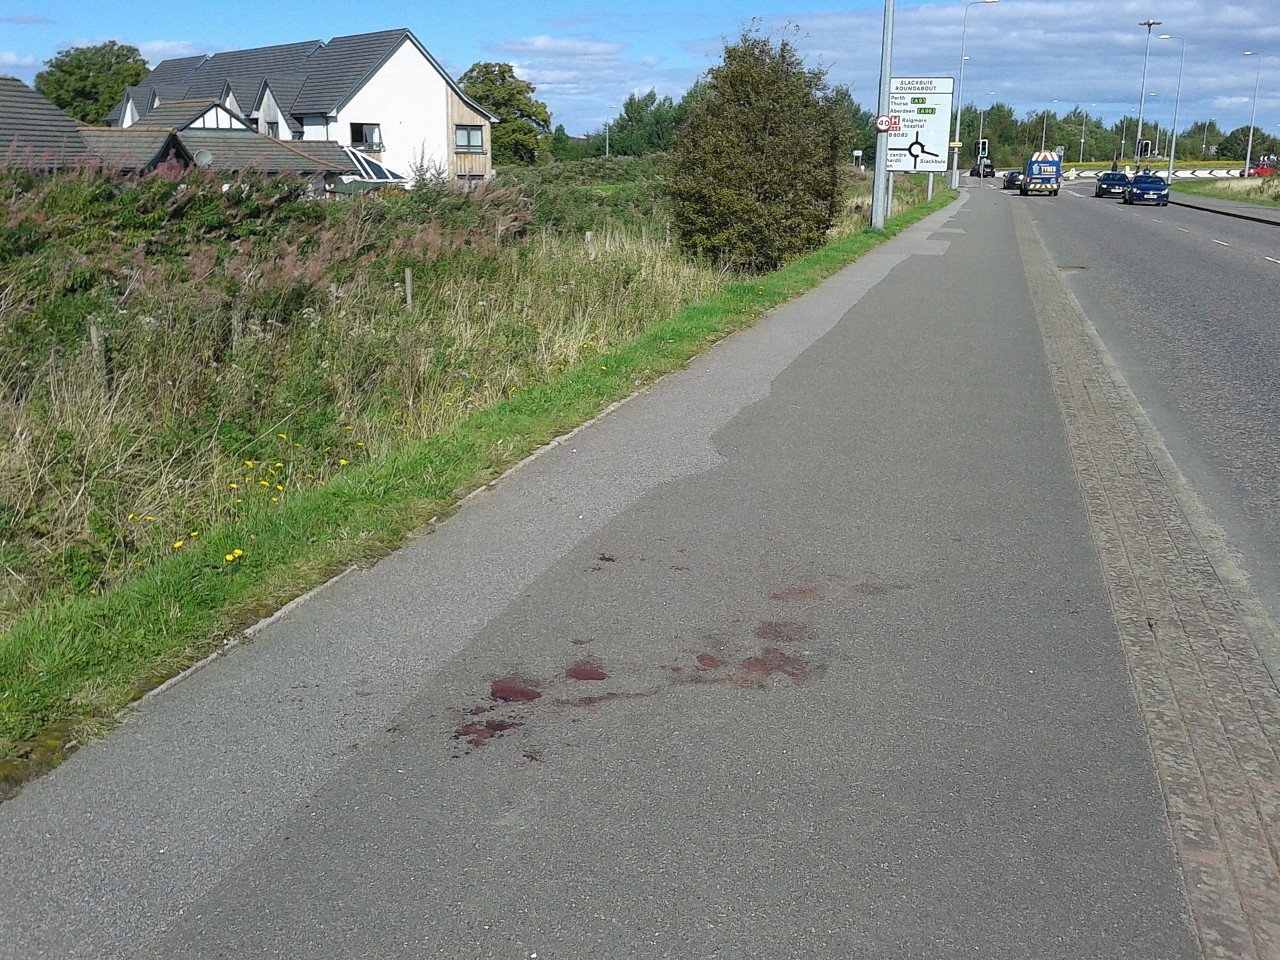 Blood left on the road following the incident in Inverness